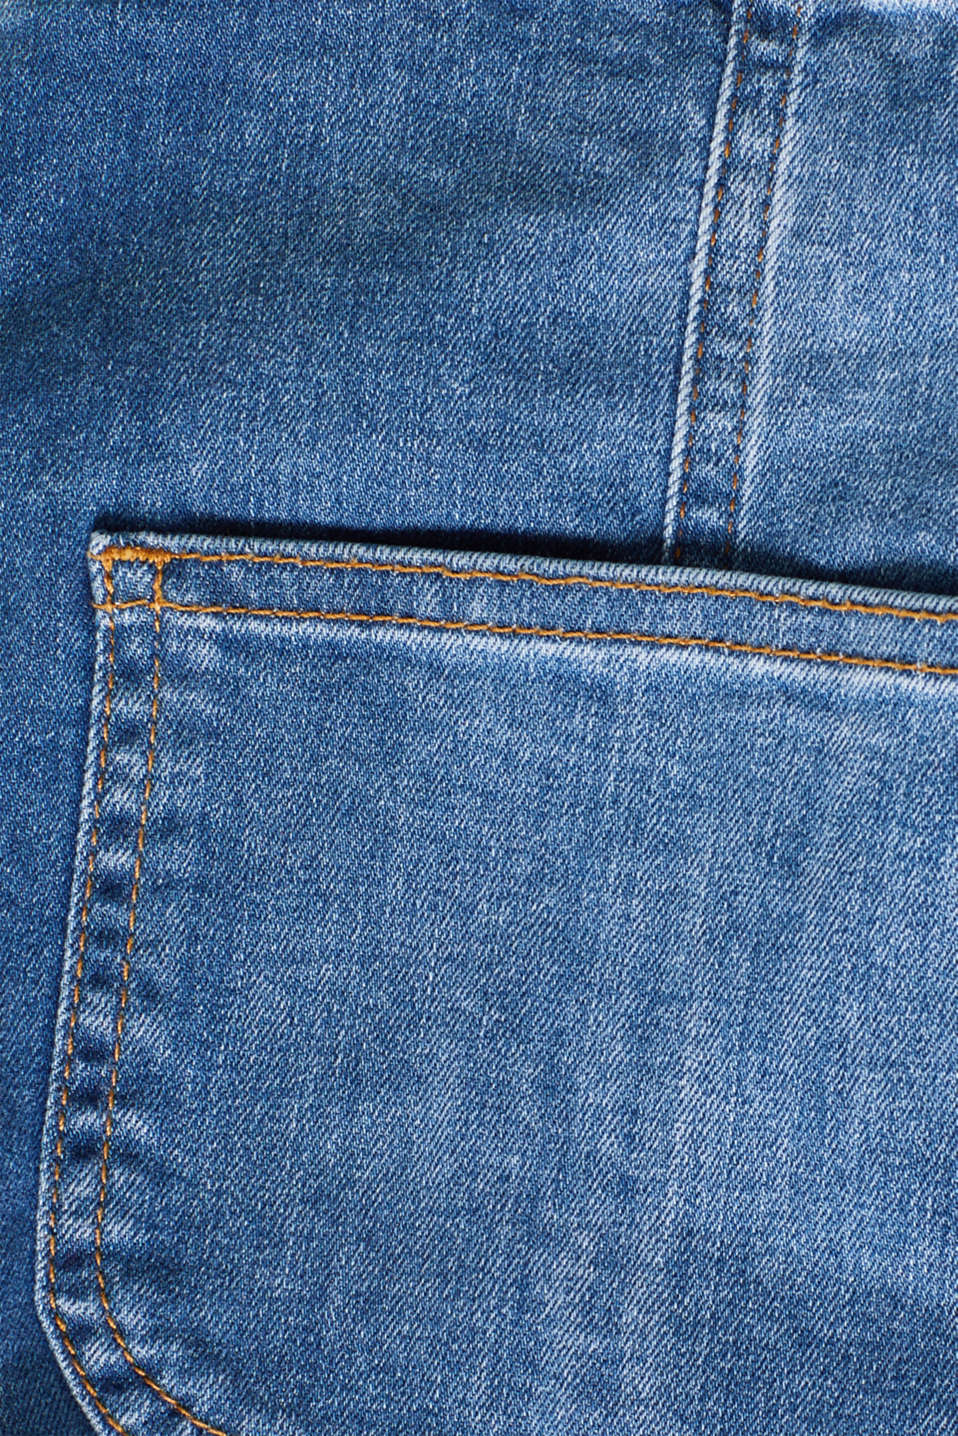 Denim dungaree shorts with stretch for comfort, LCMEDIUM WASH, detail image number 4